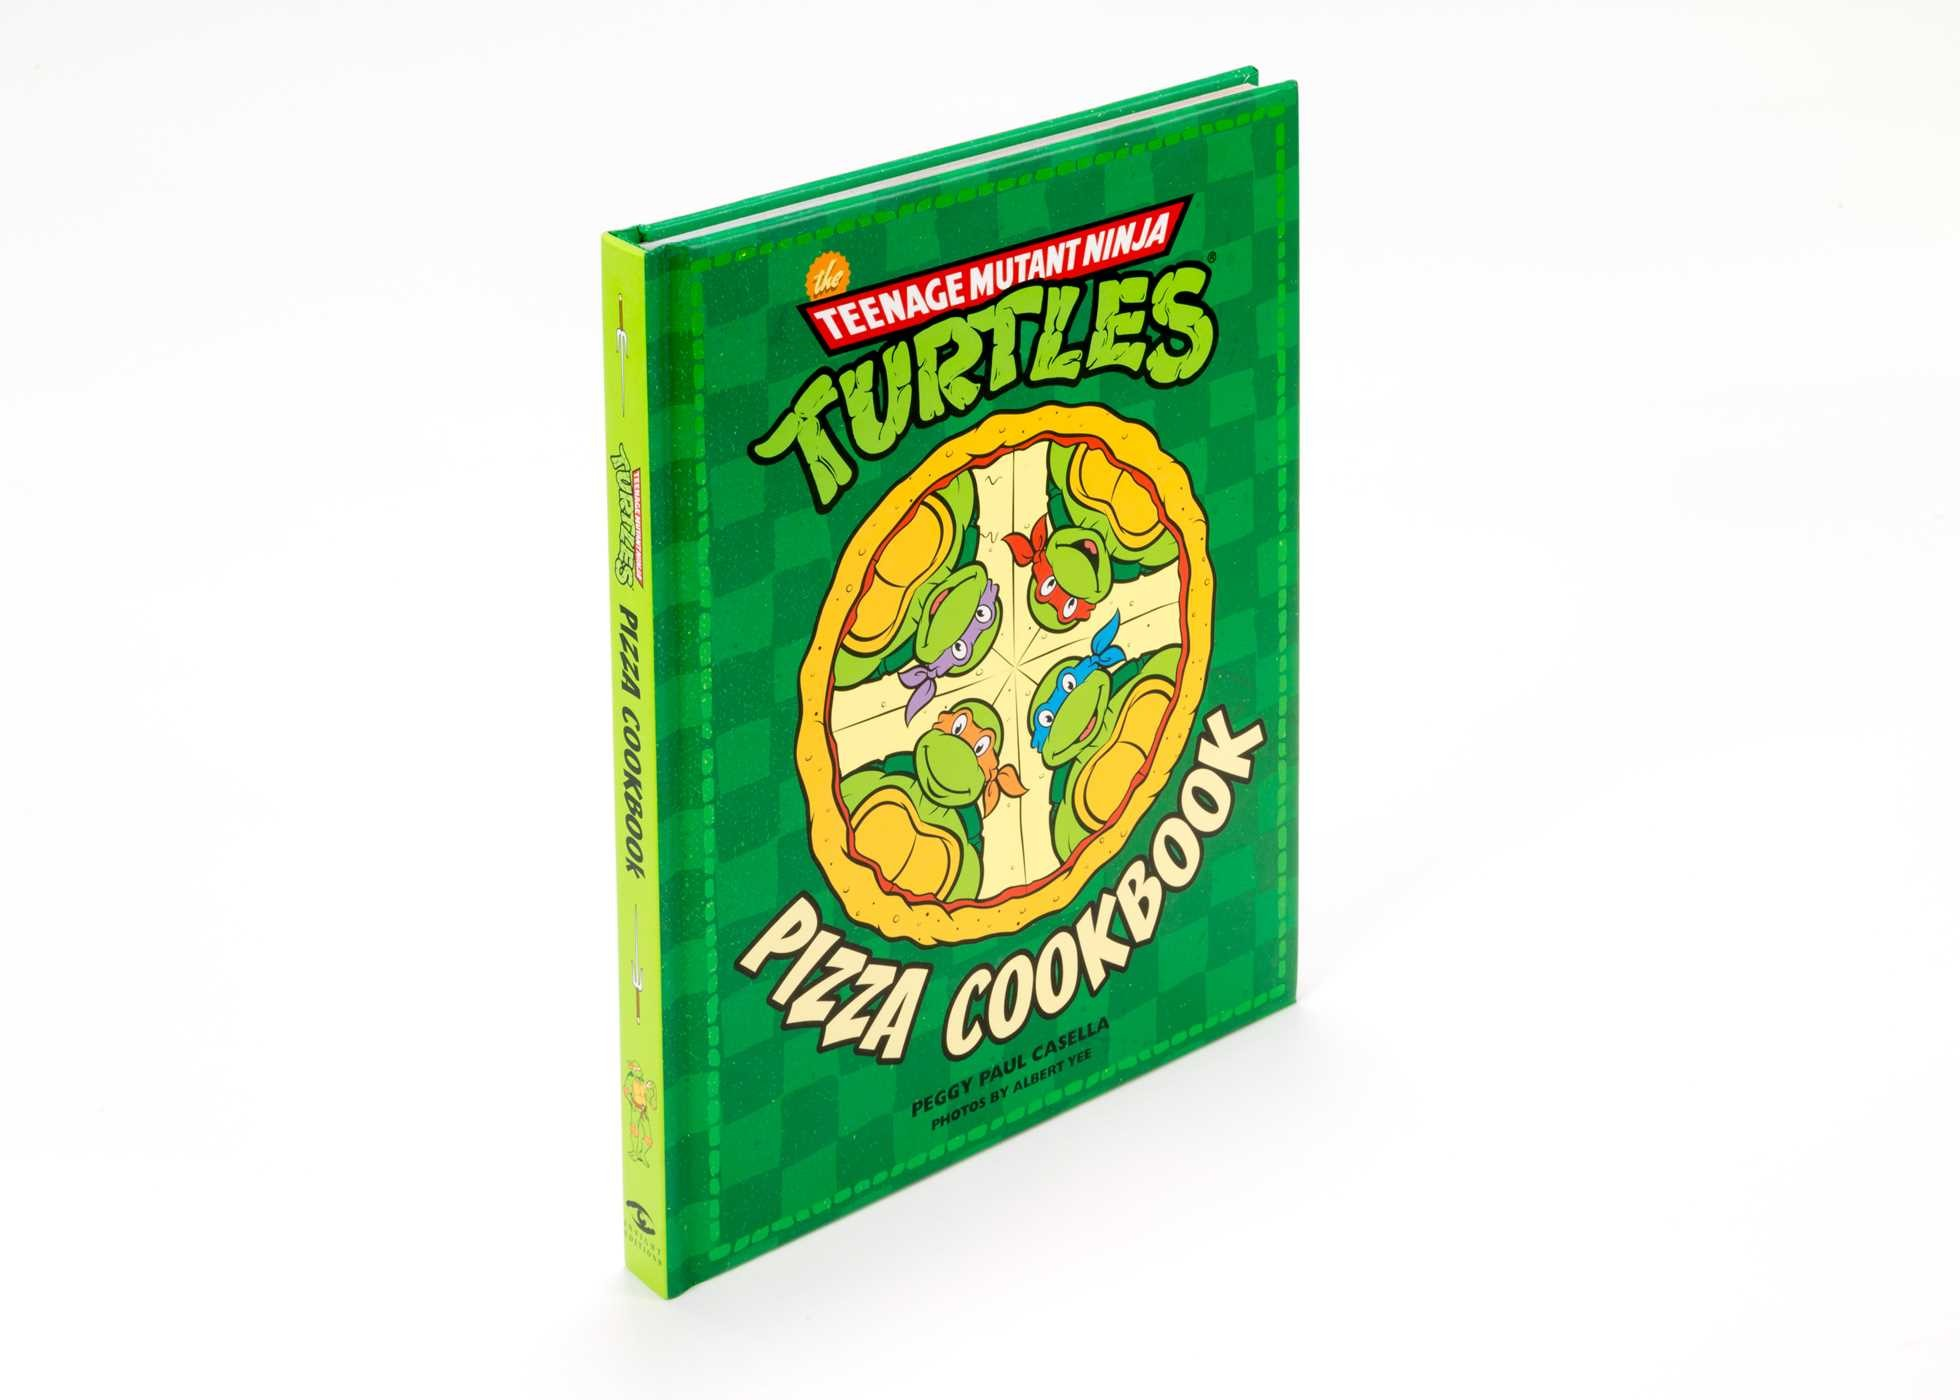 The teenage mutant ninja turtles pizza cookbook 9781608878314.in05